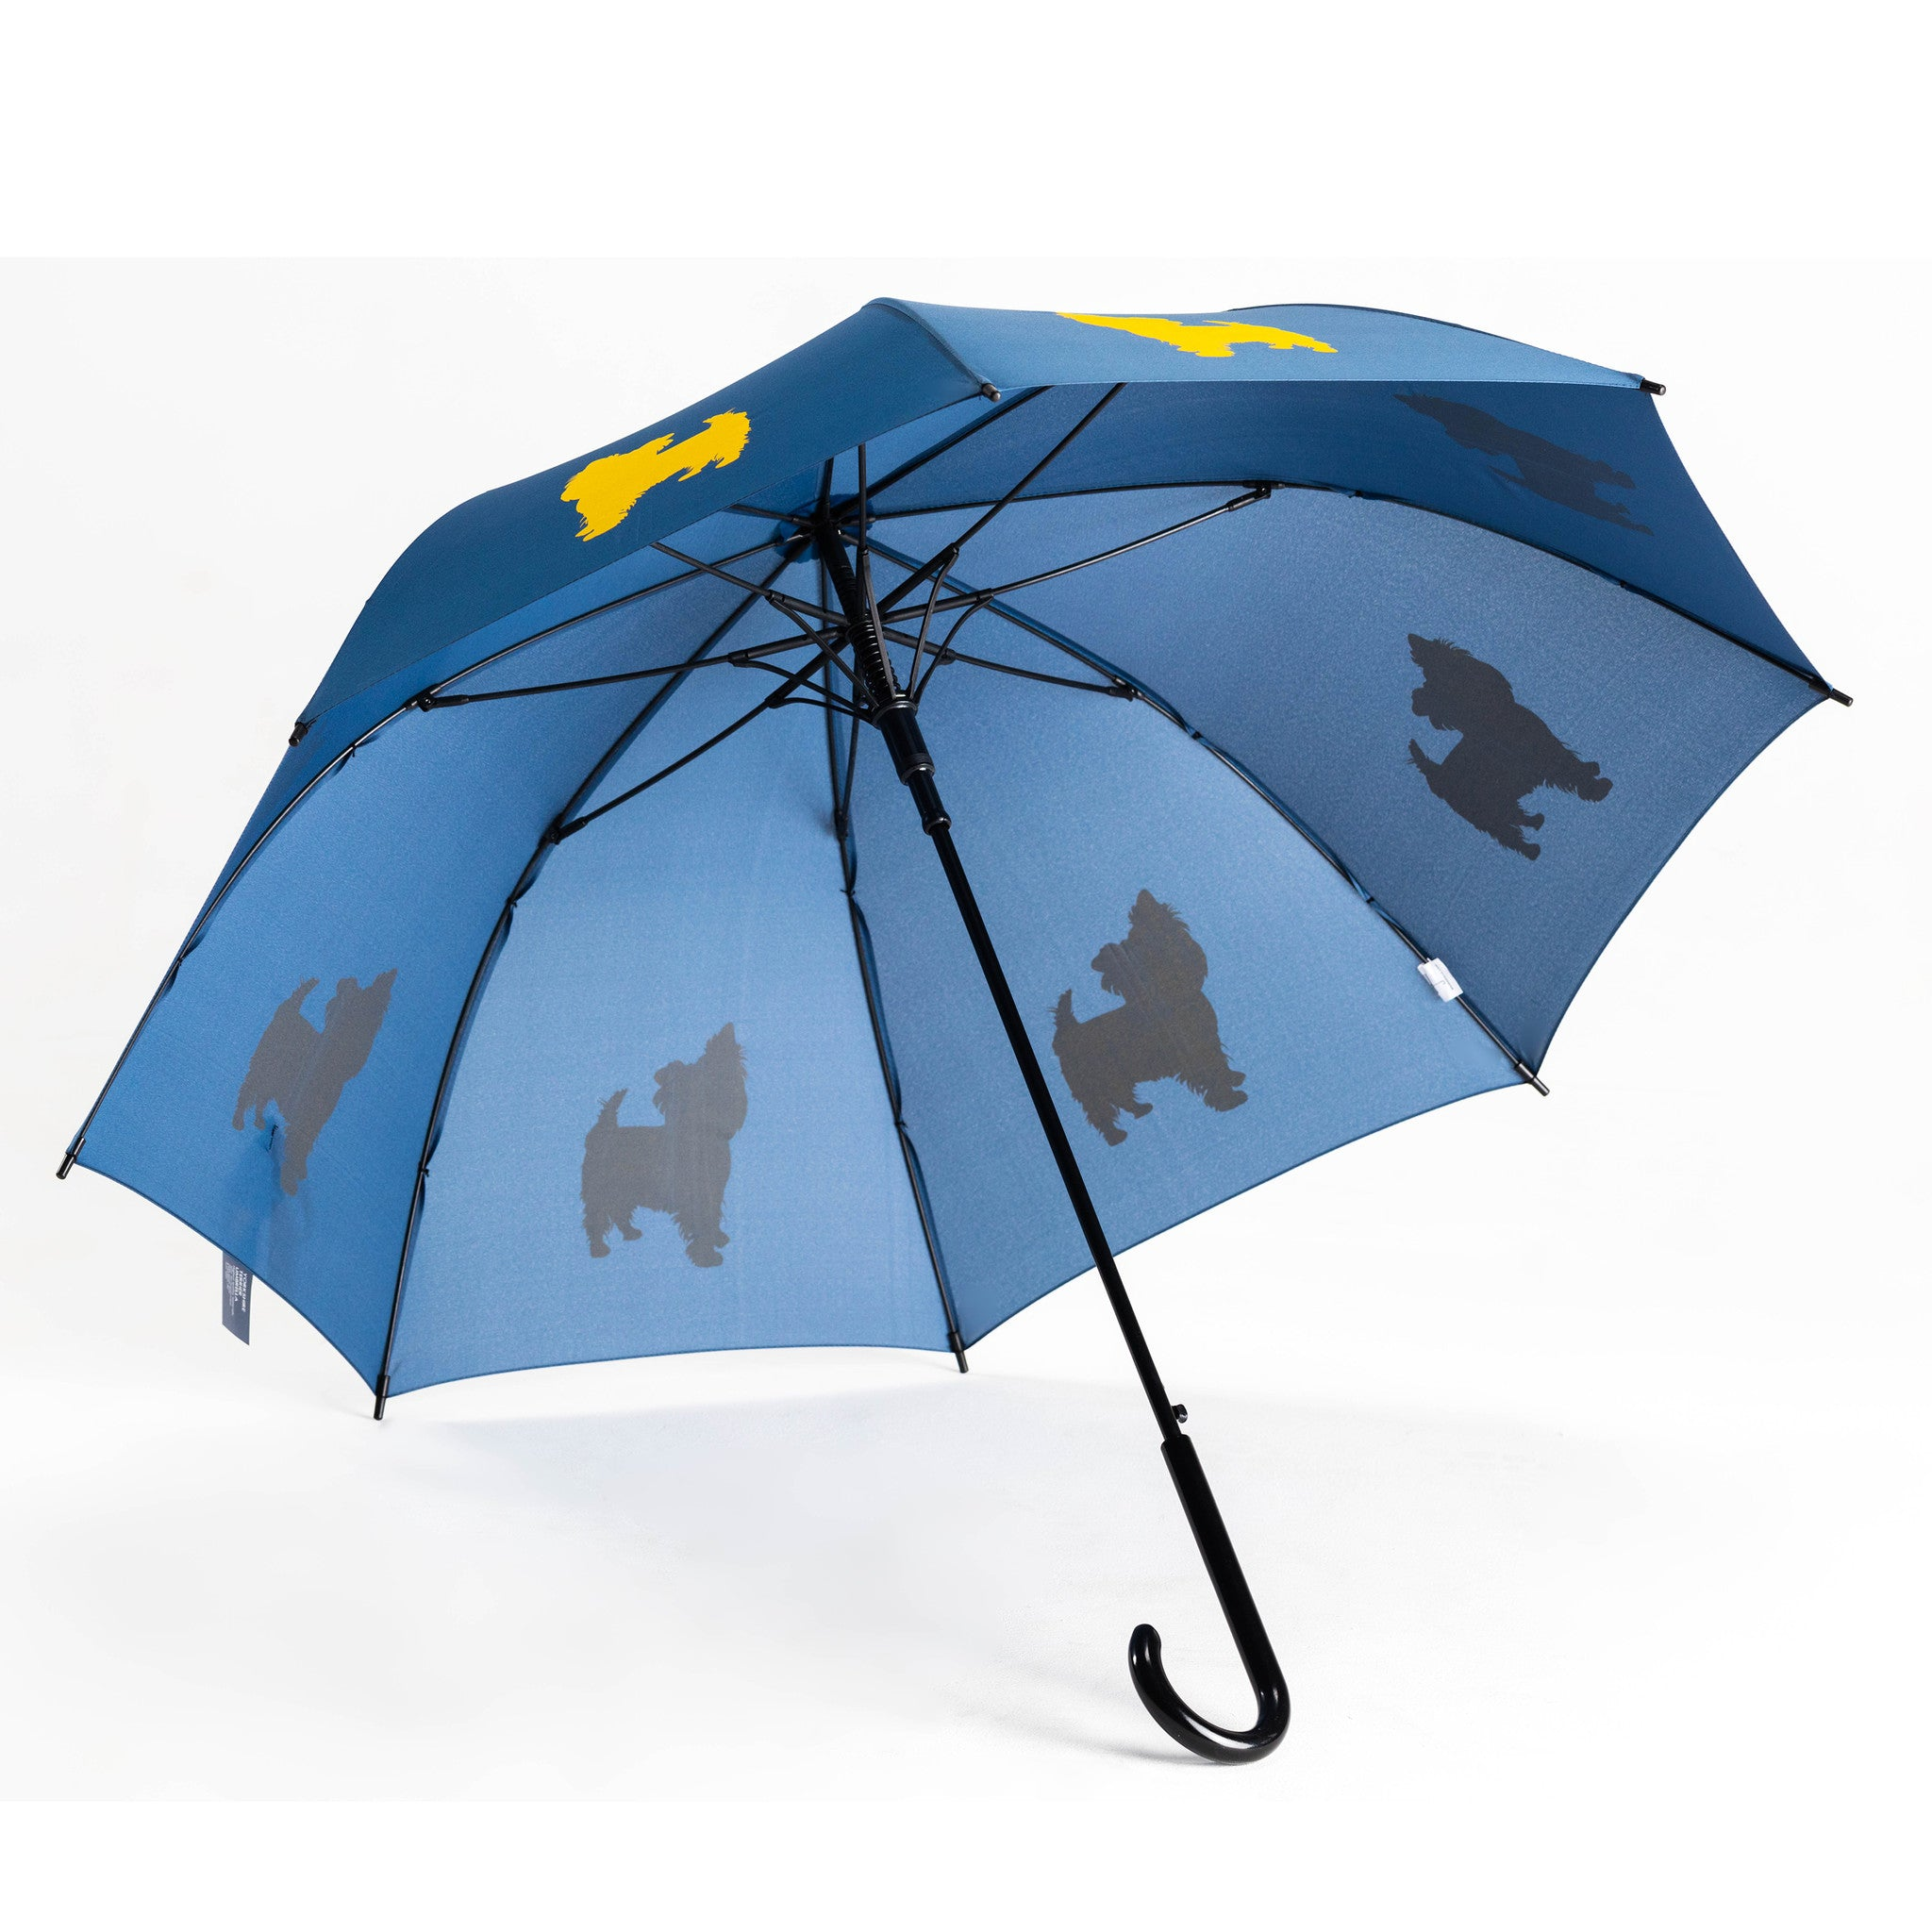 Yorkshire Terrier Umbrella Auto Open Premium Quality Yellow on Navy Blue